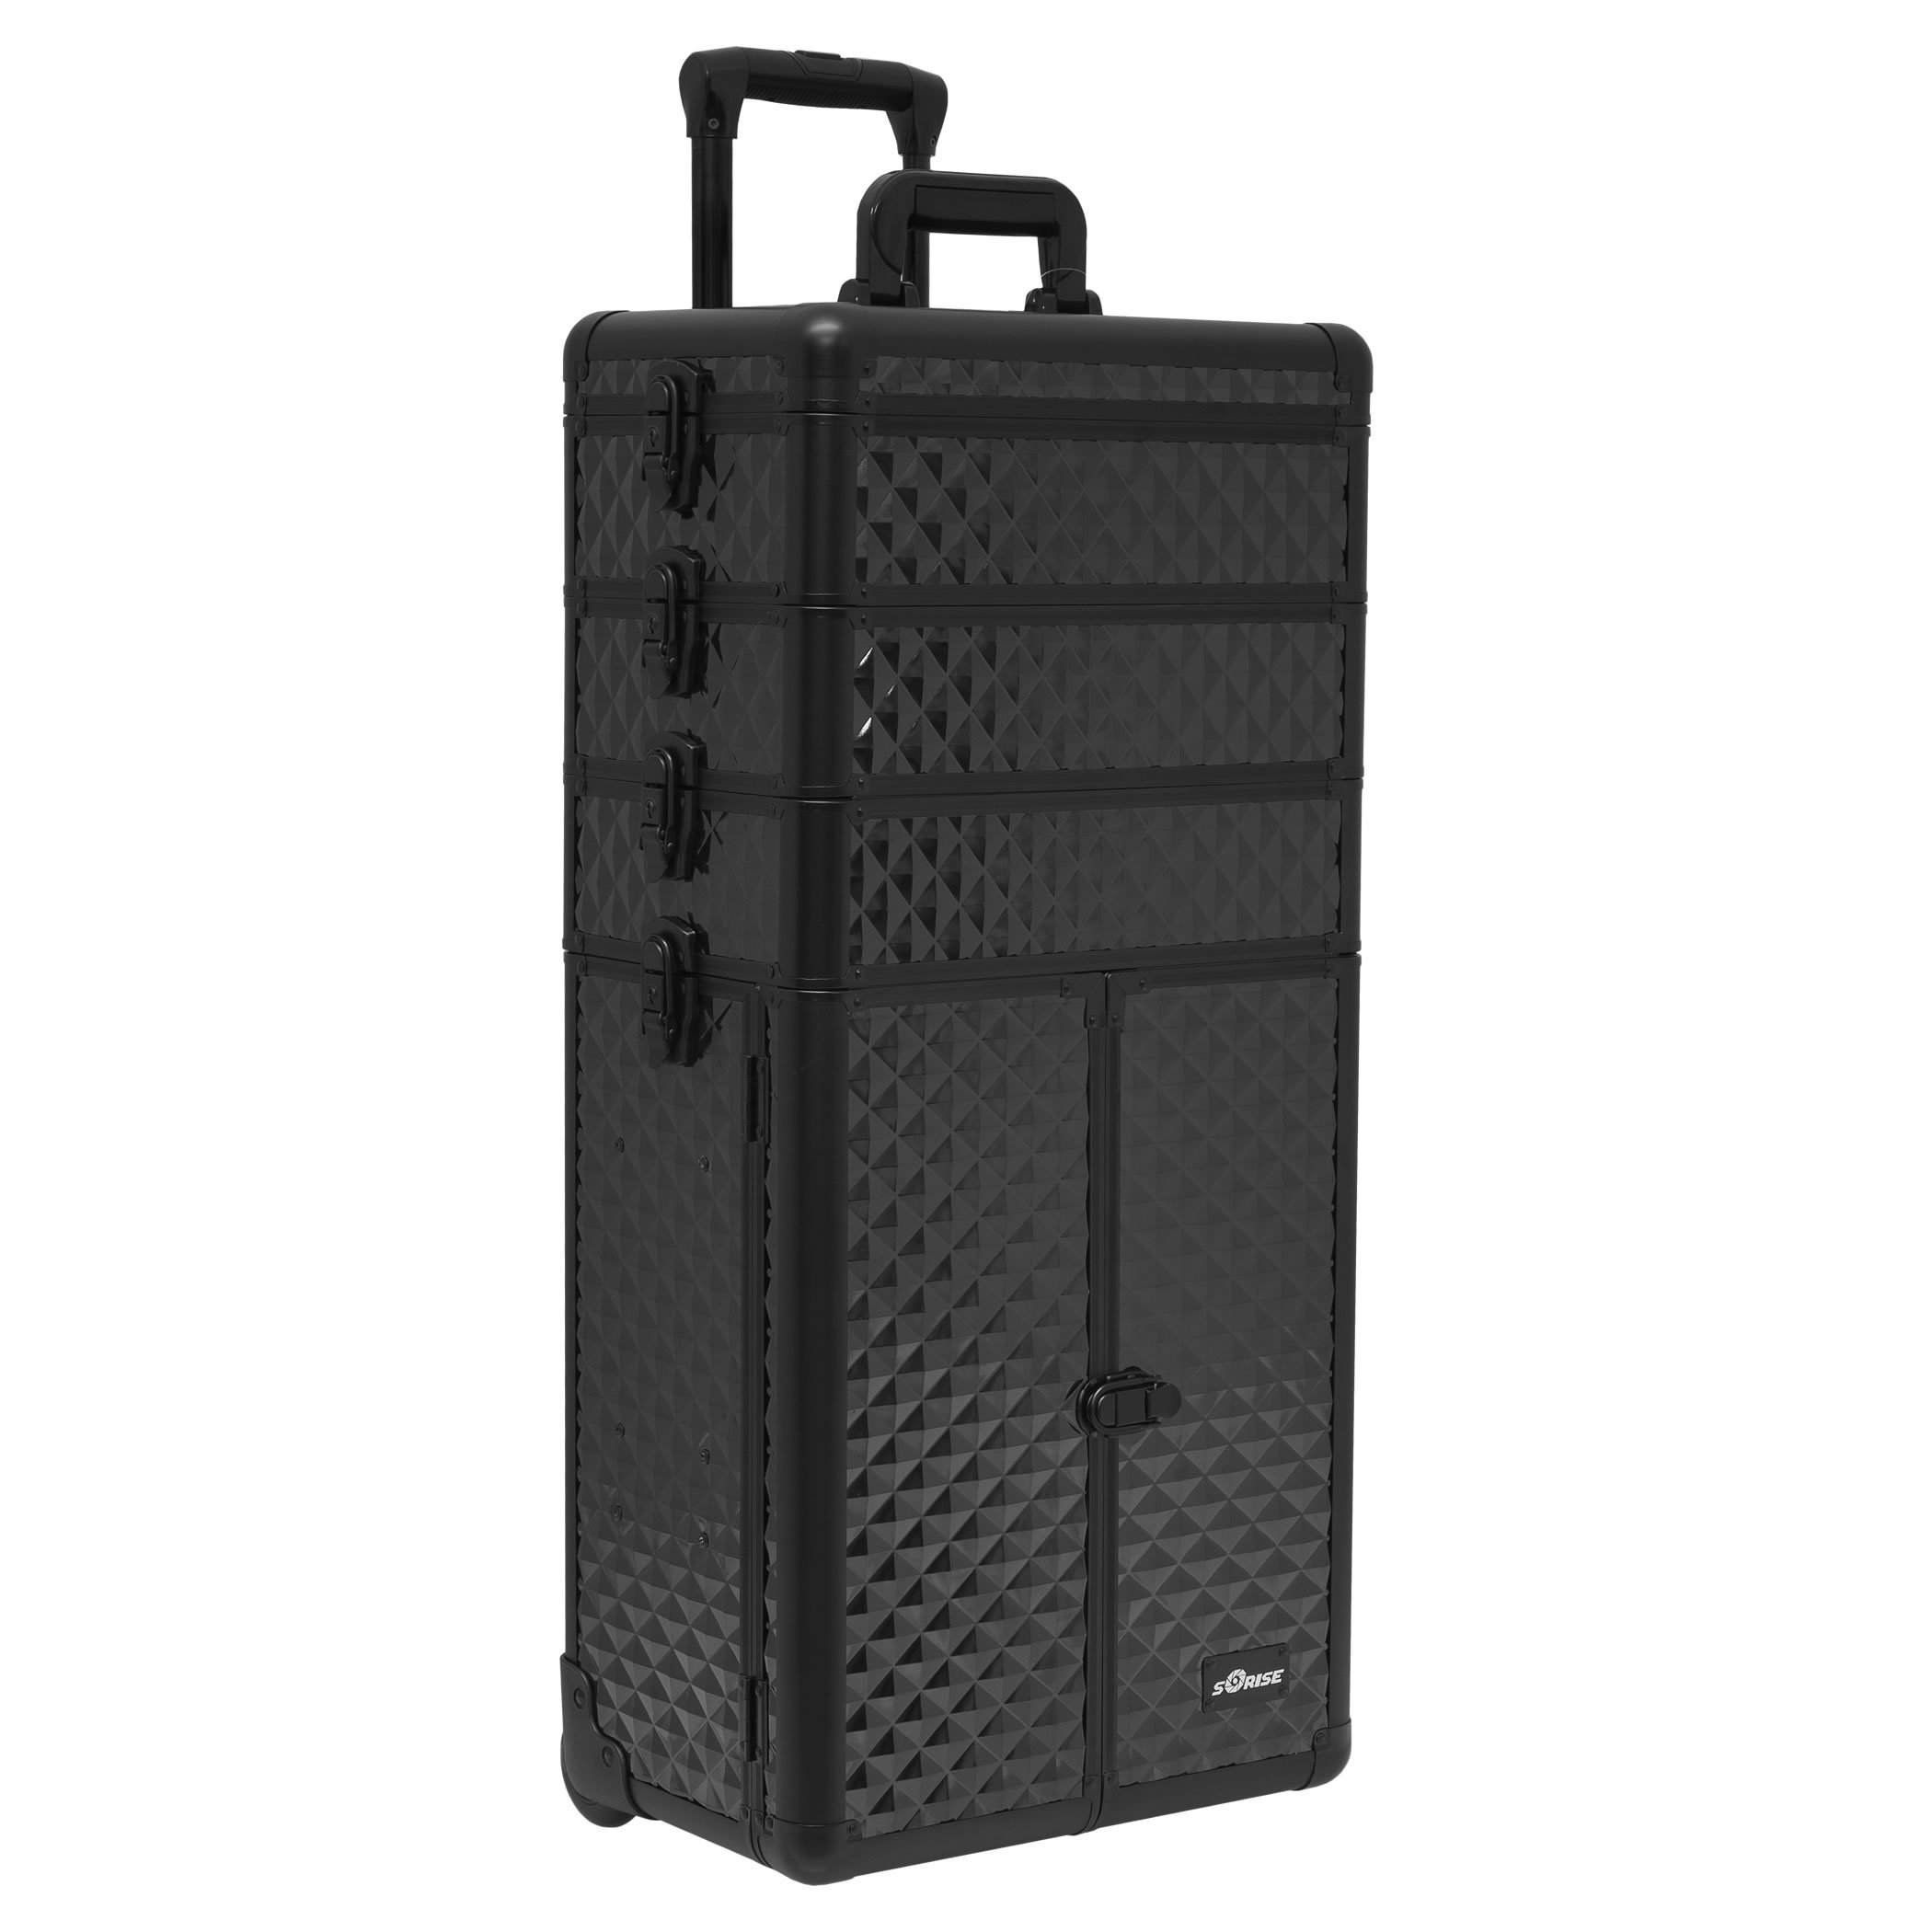 SUNRISE Makeup Case on Wheels 4 in 1 Professional Organizer I3365, 3 Stackable Trays and 4 Drawers, Locking with Mirror, Black Diamond